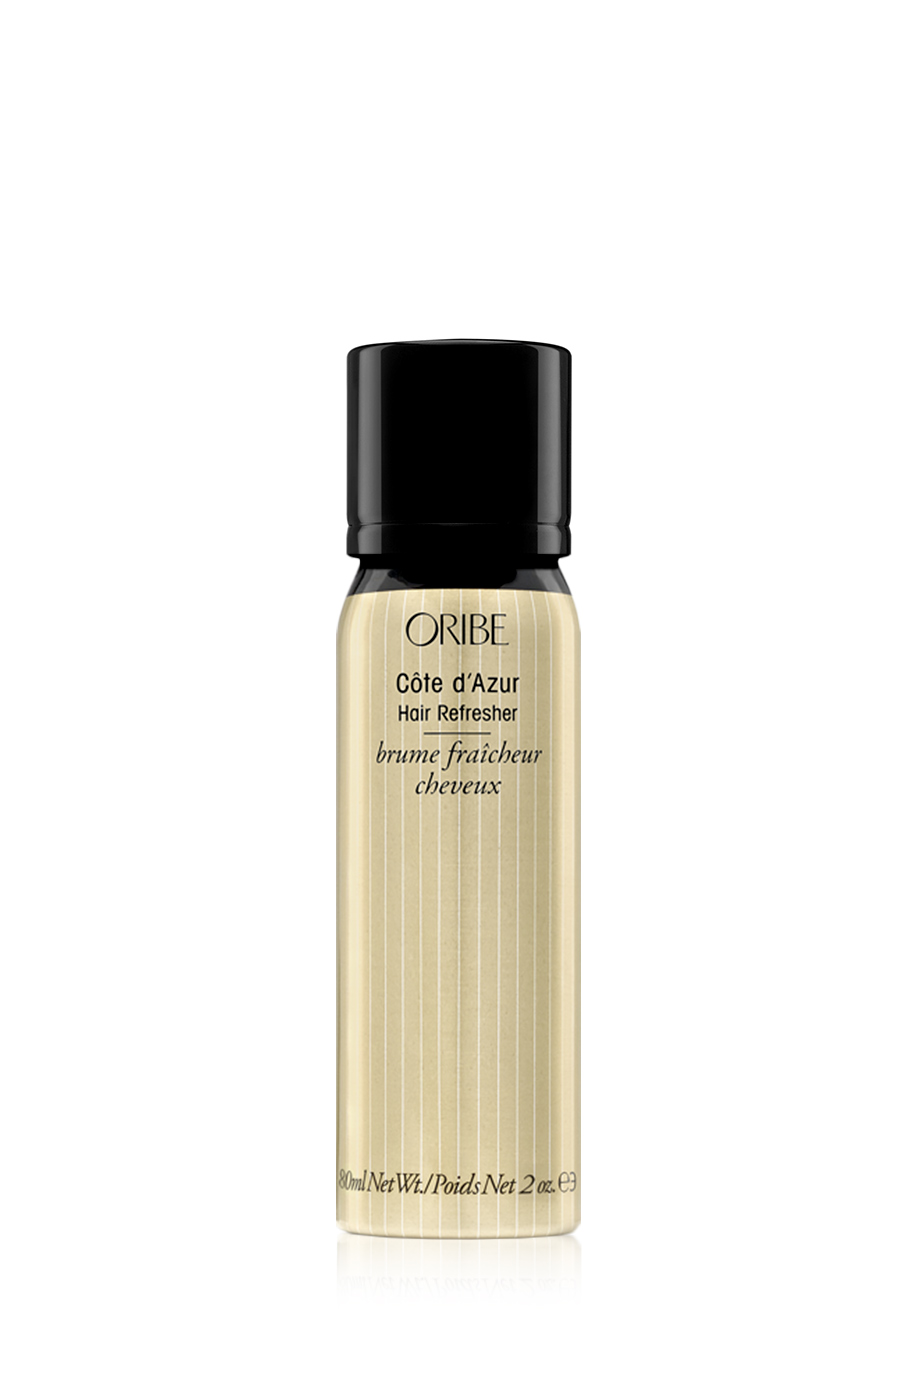 Спрей для волос Oribe Cote dAzur Hair Refresher. 80 мл